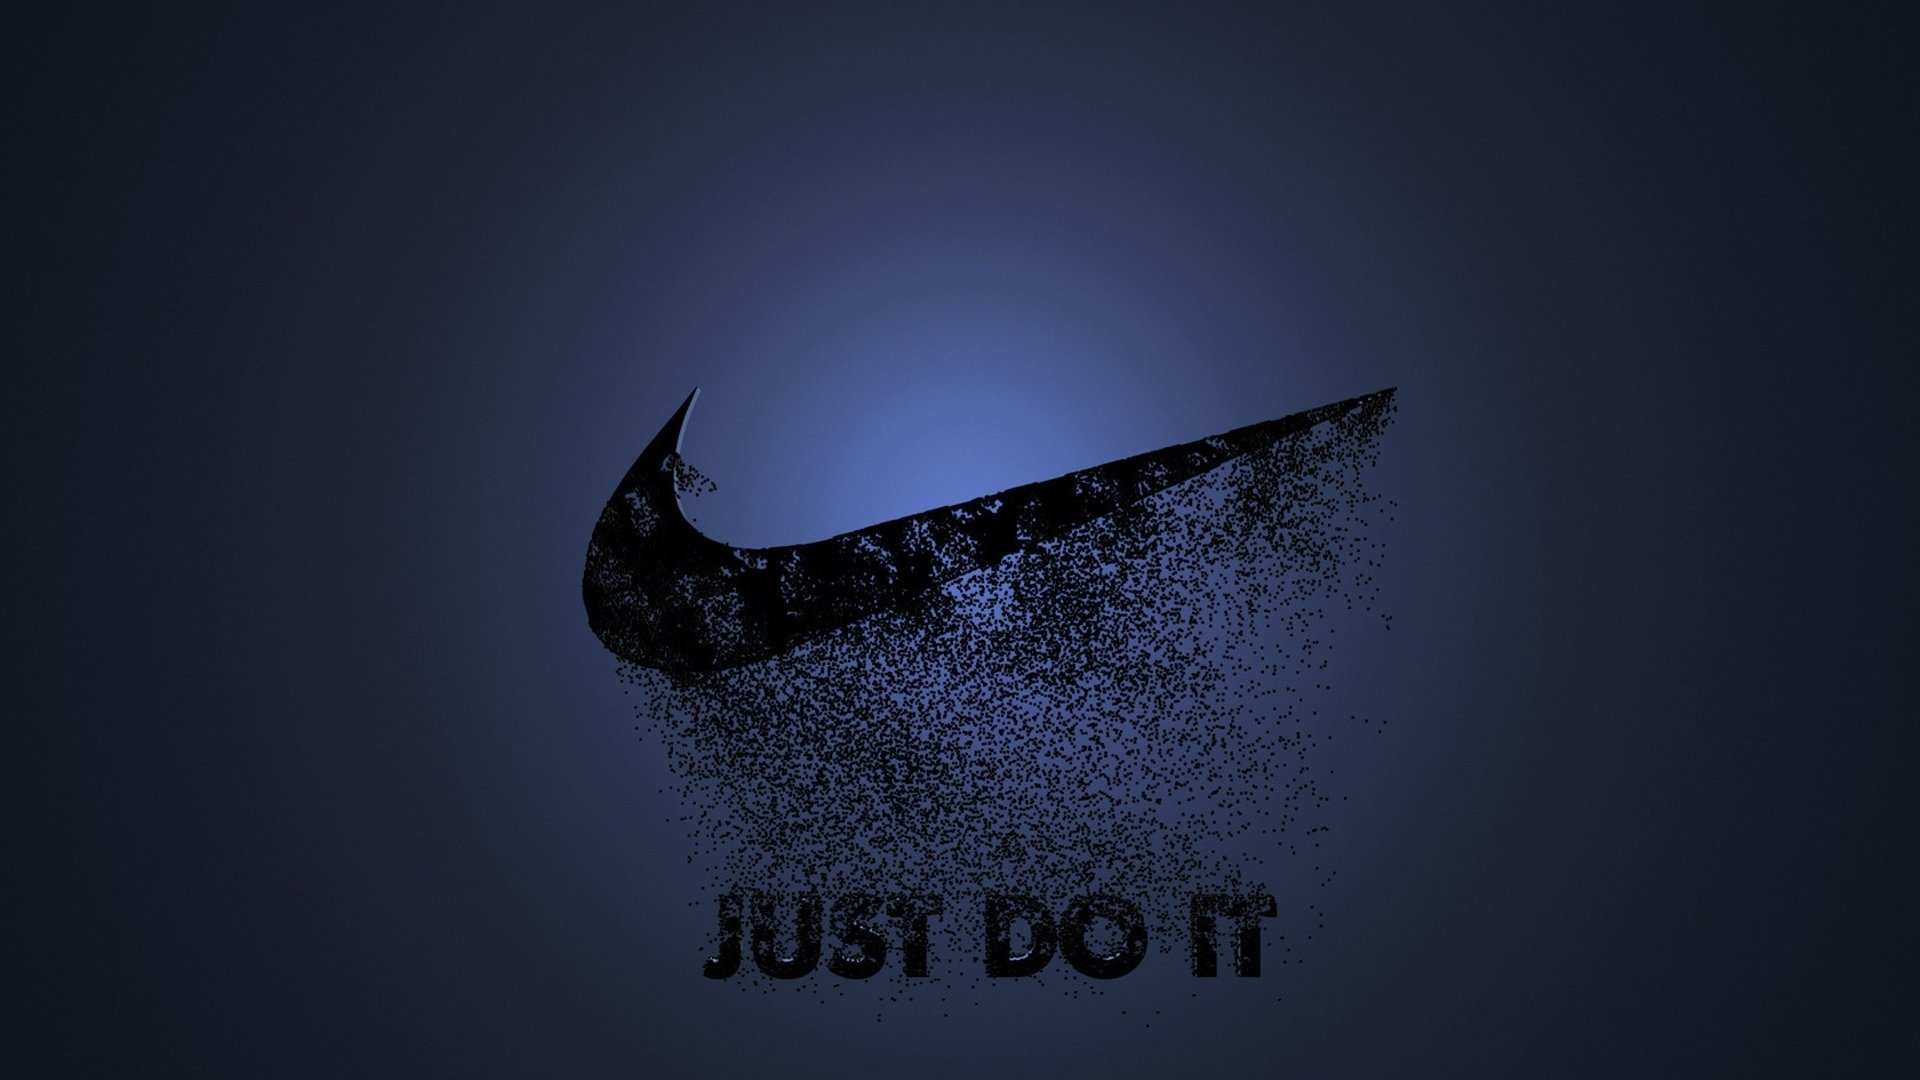 Hd wallpaper nike - Hd Wallpaper Background Id 632661 1920x1080 Products Nike